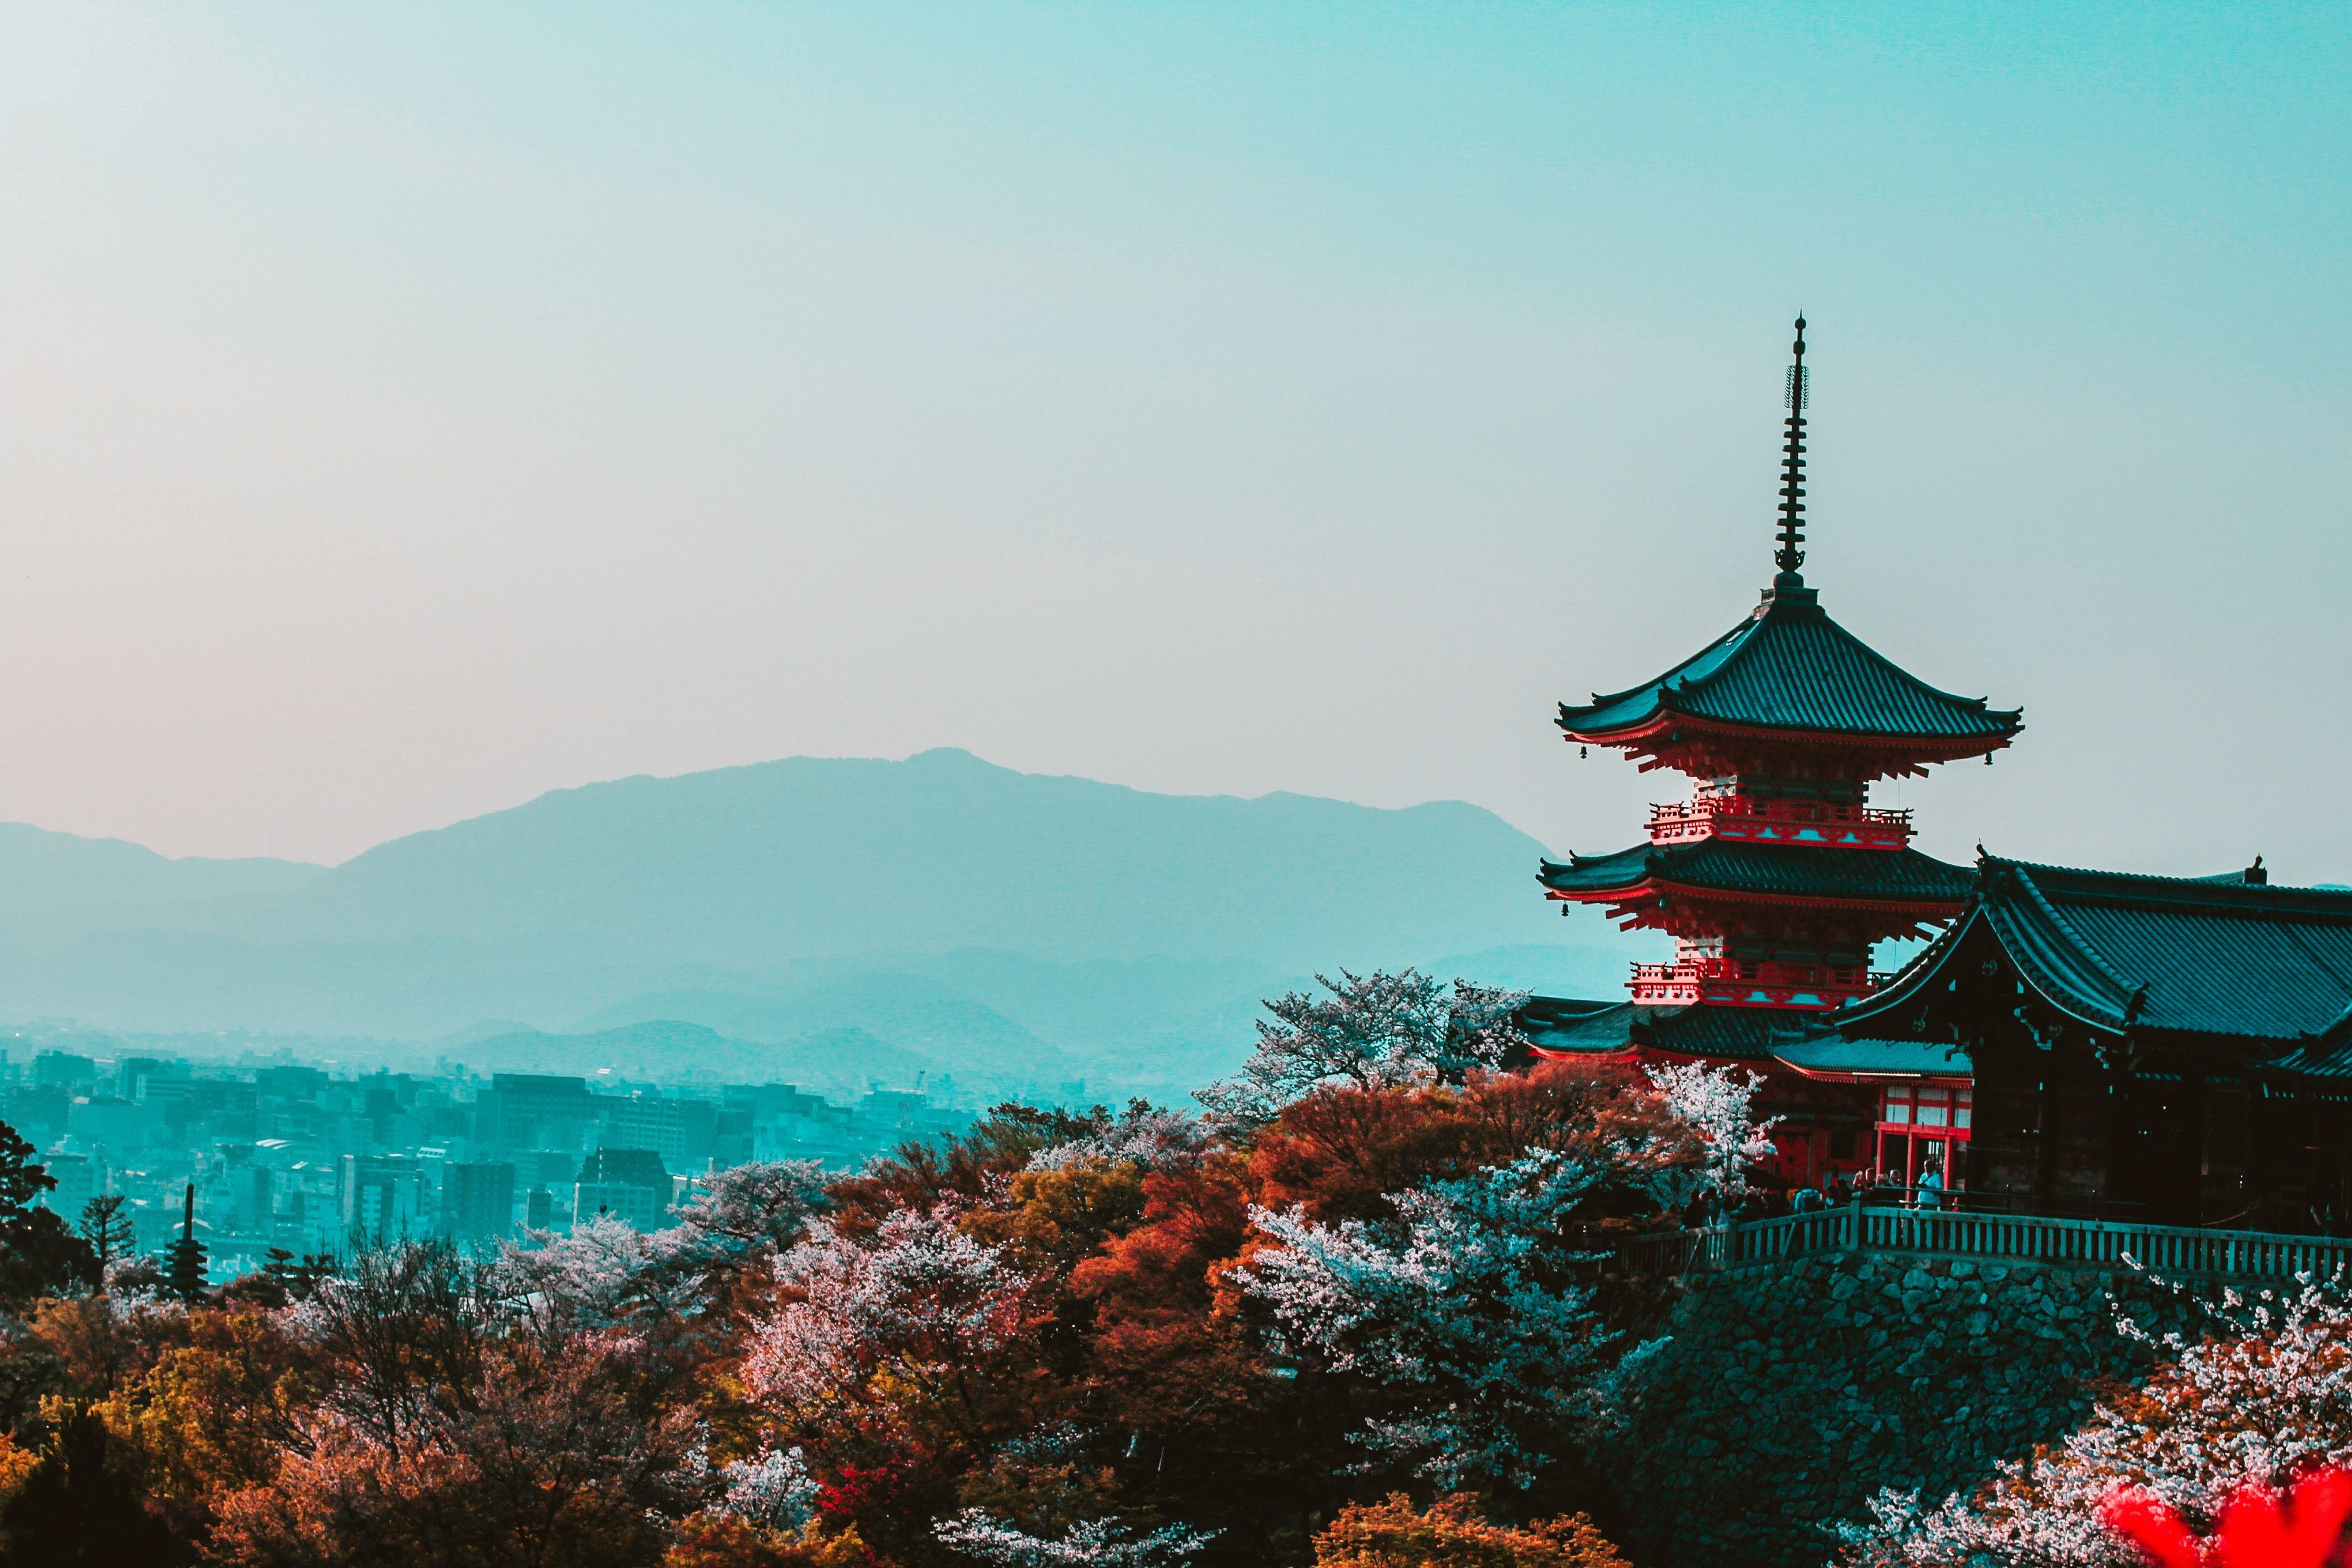 Japanese Aesthetic Computer Wallpapers - Top Free Japanese ...